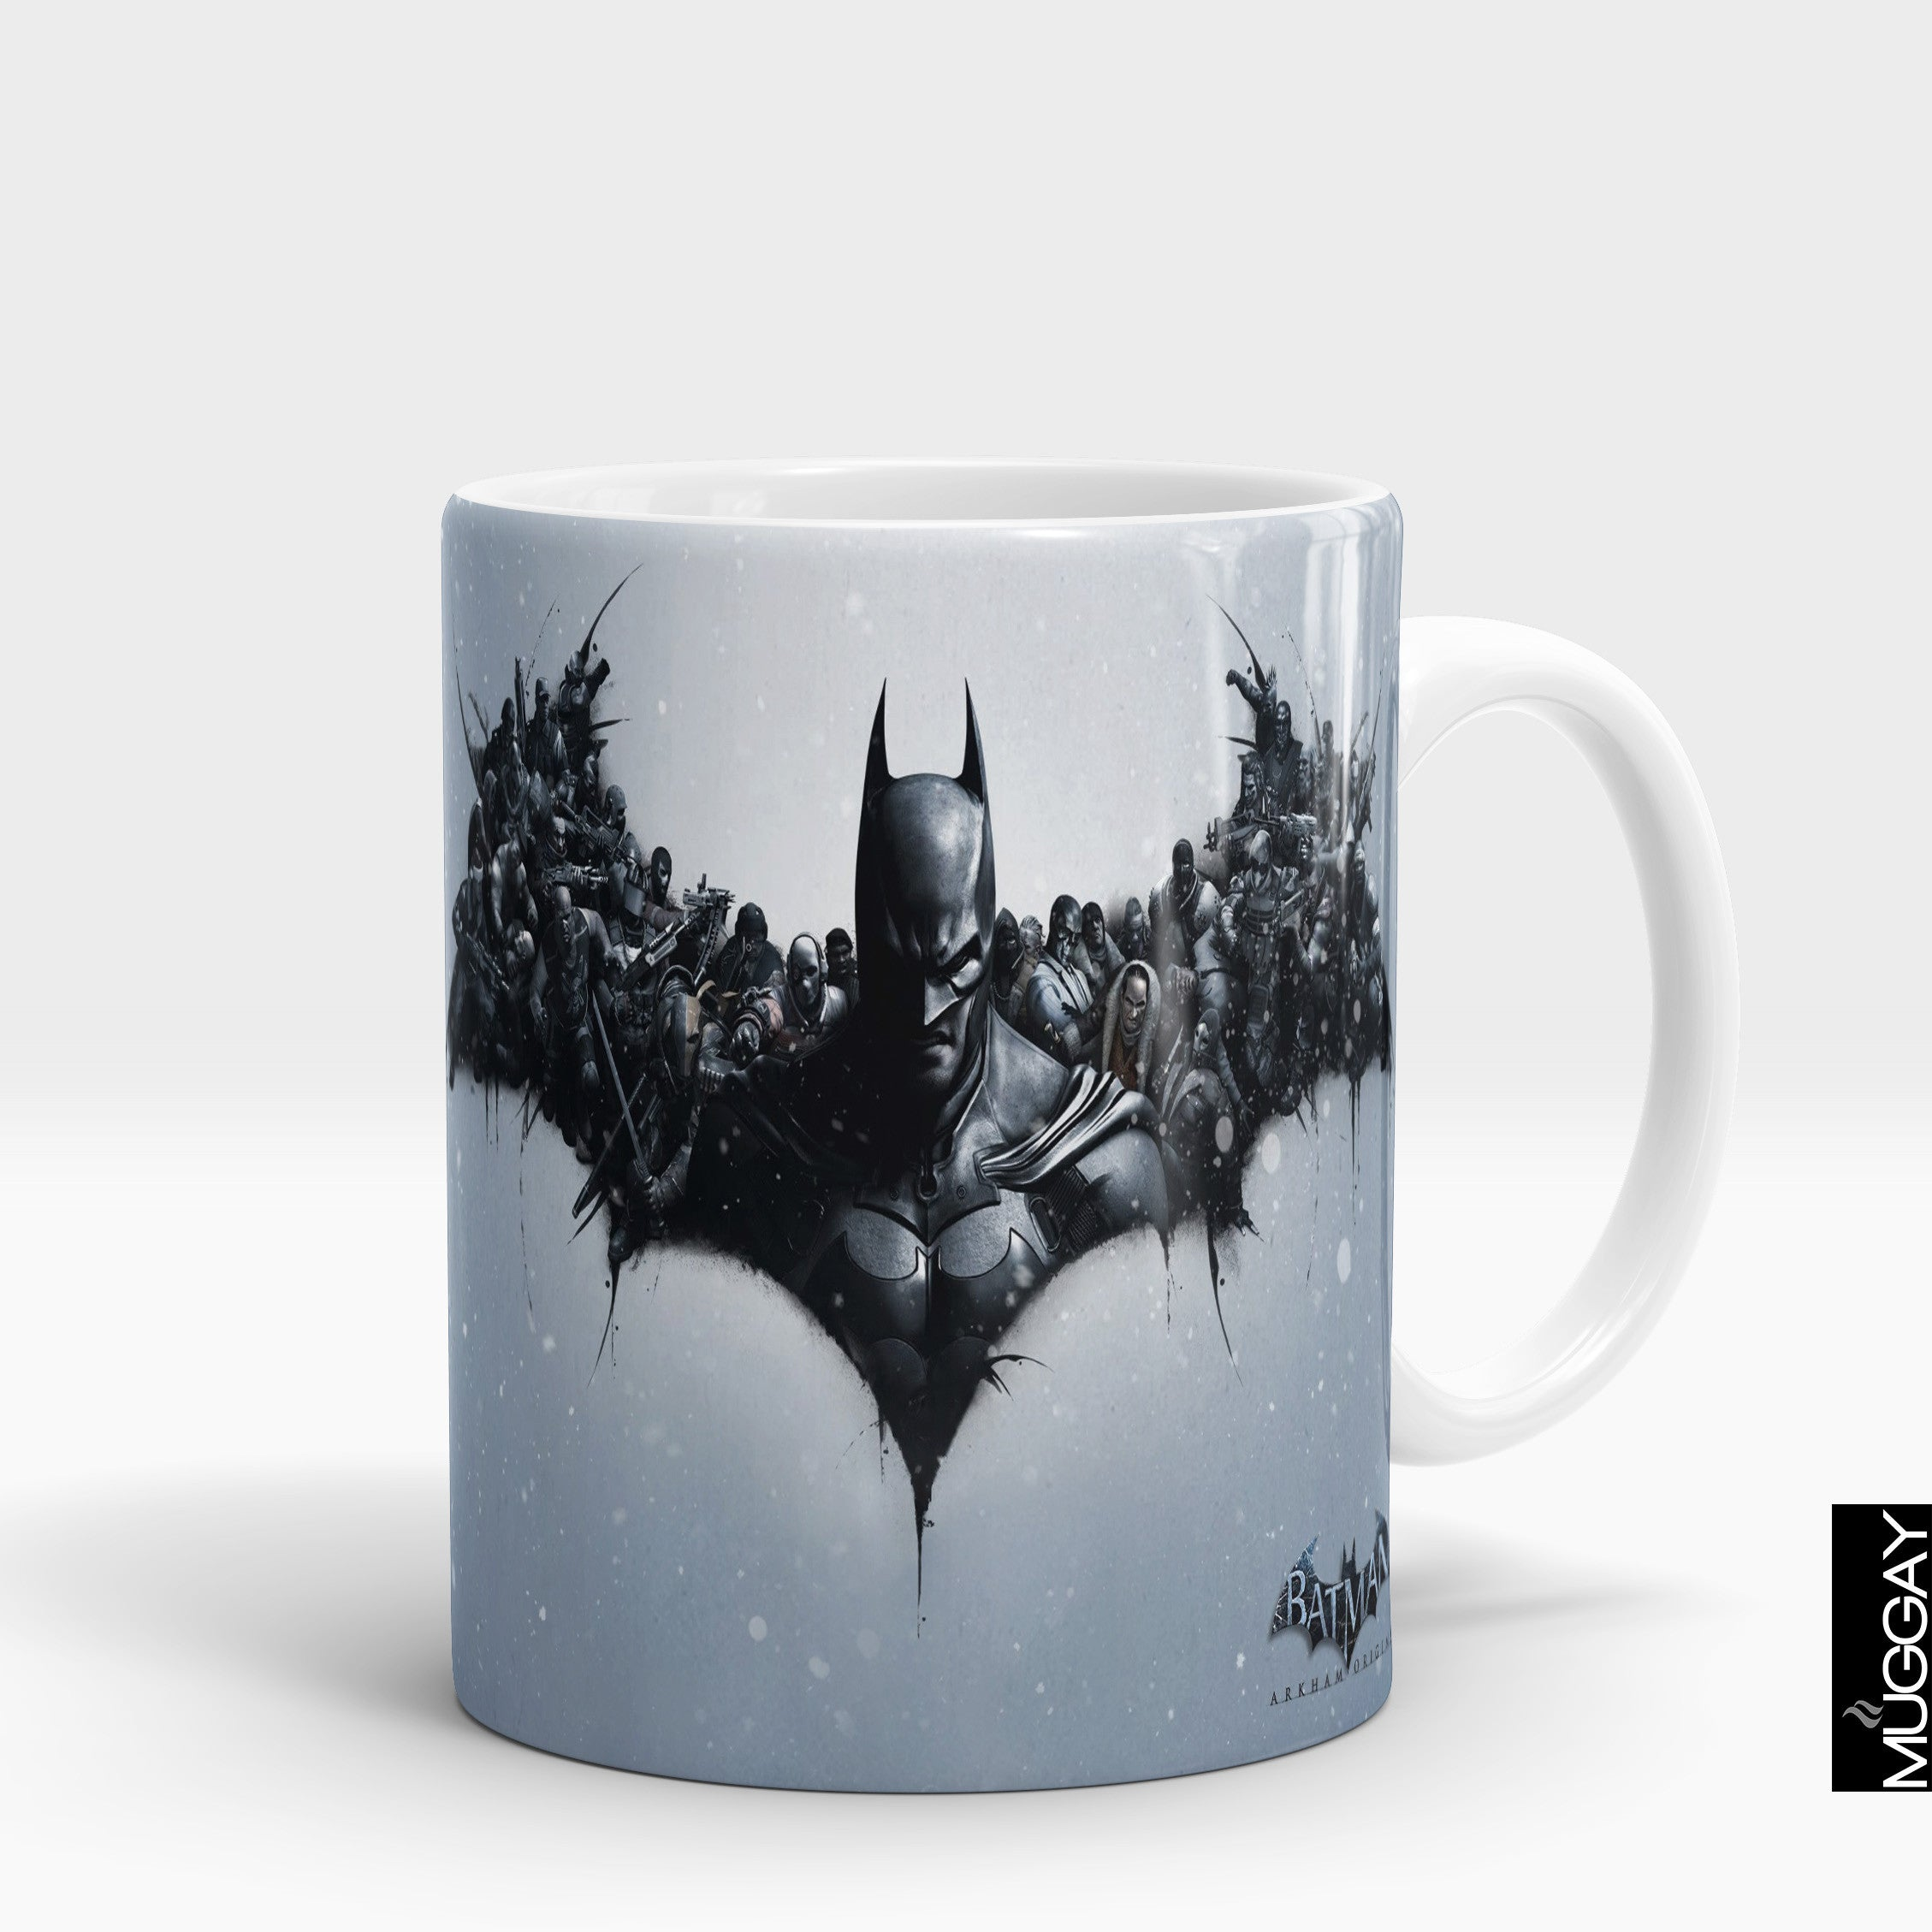 Batman Design Mugs - bm1 - Muggay.com - Mugs - Printing shop - truck Art mugs - Mug printing - Customized printing - Digital printing - Muggay